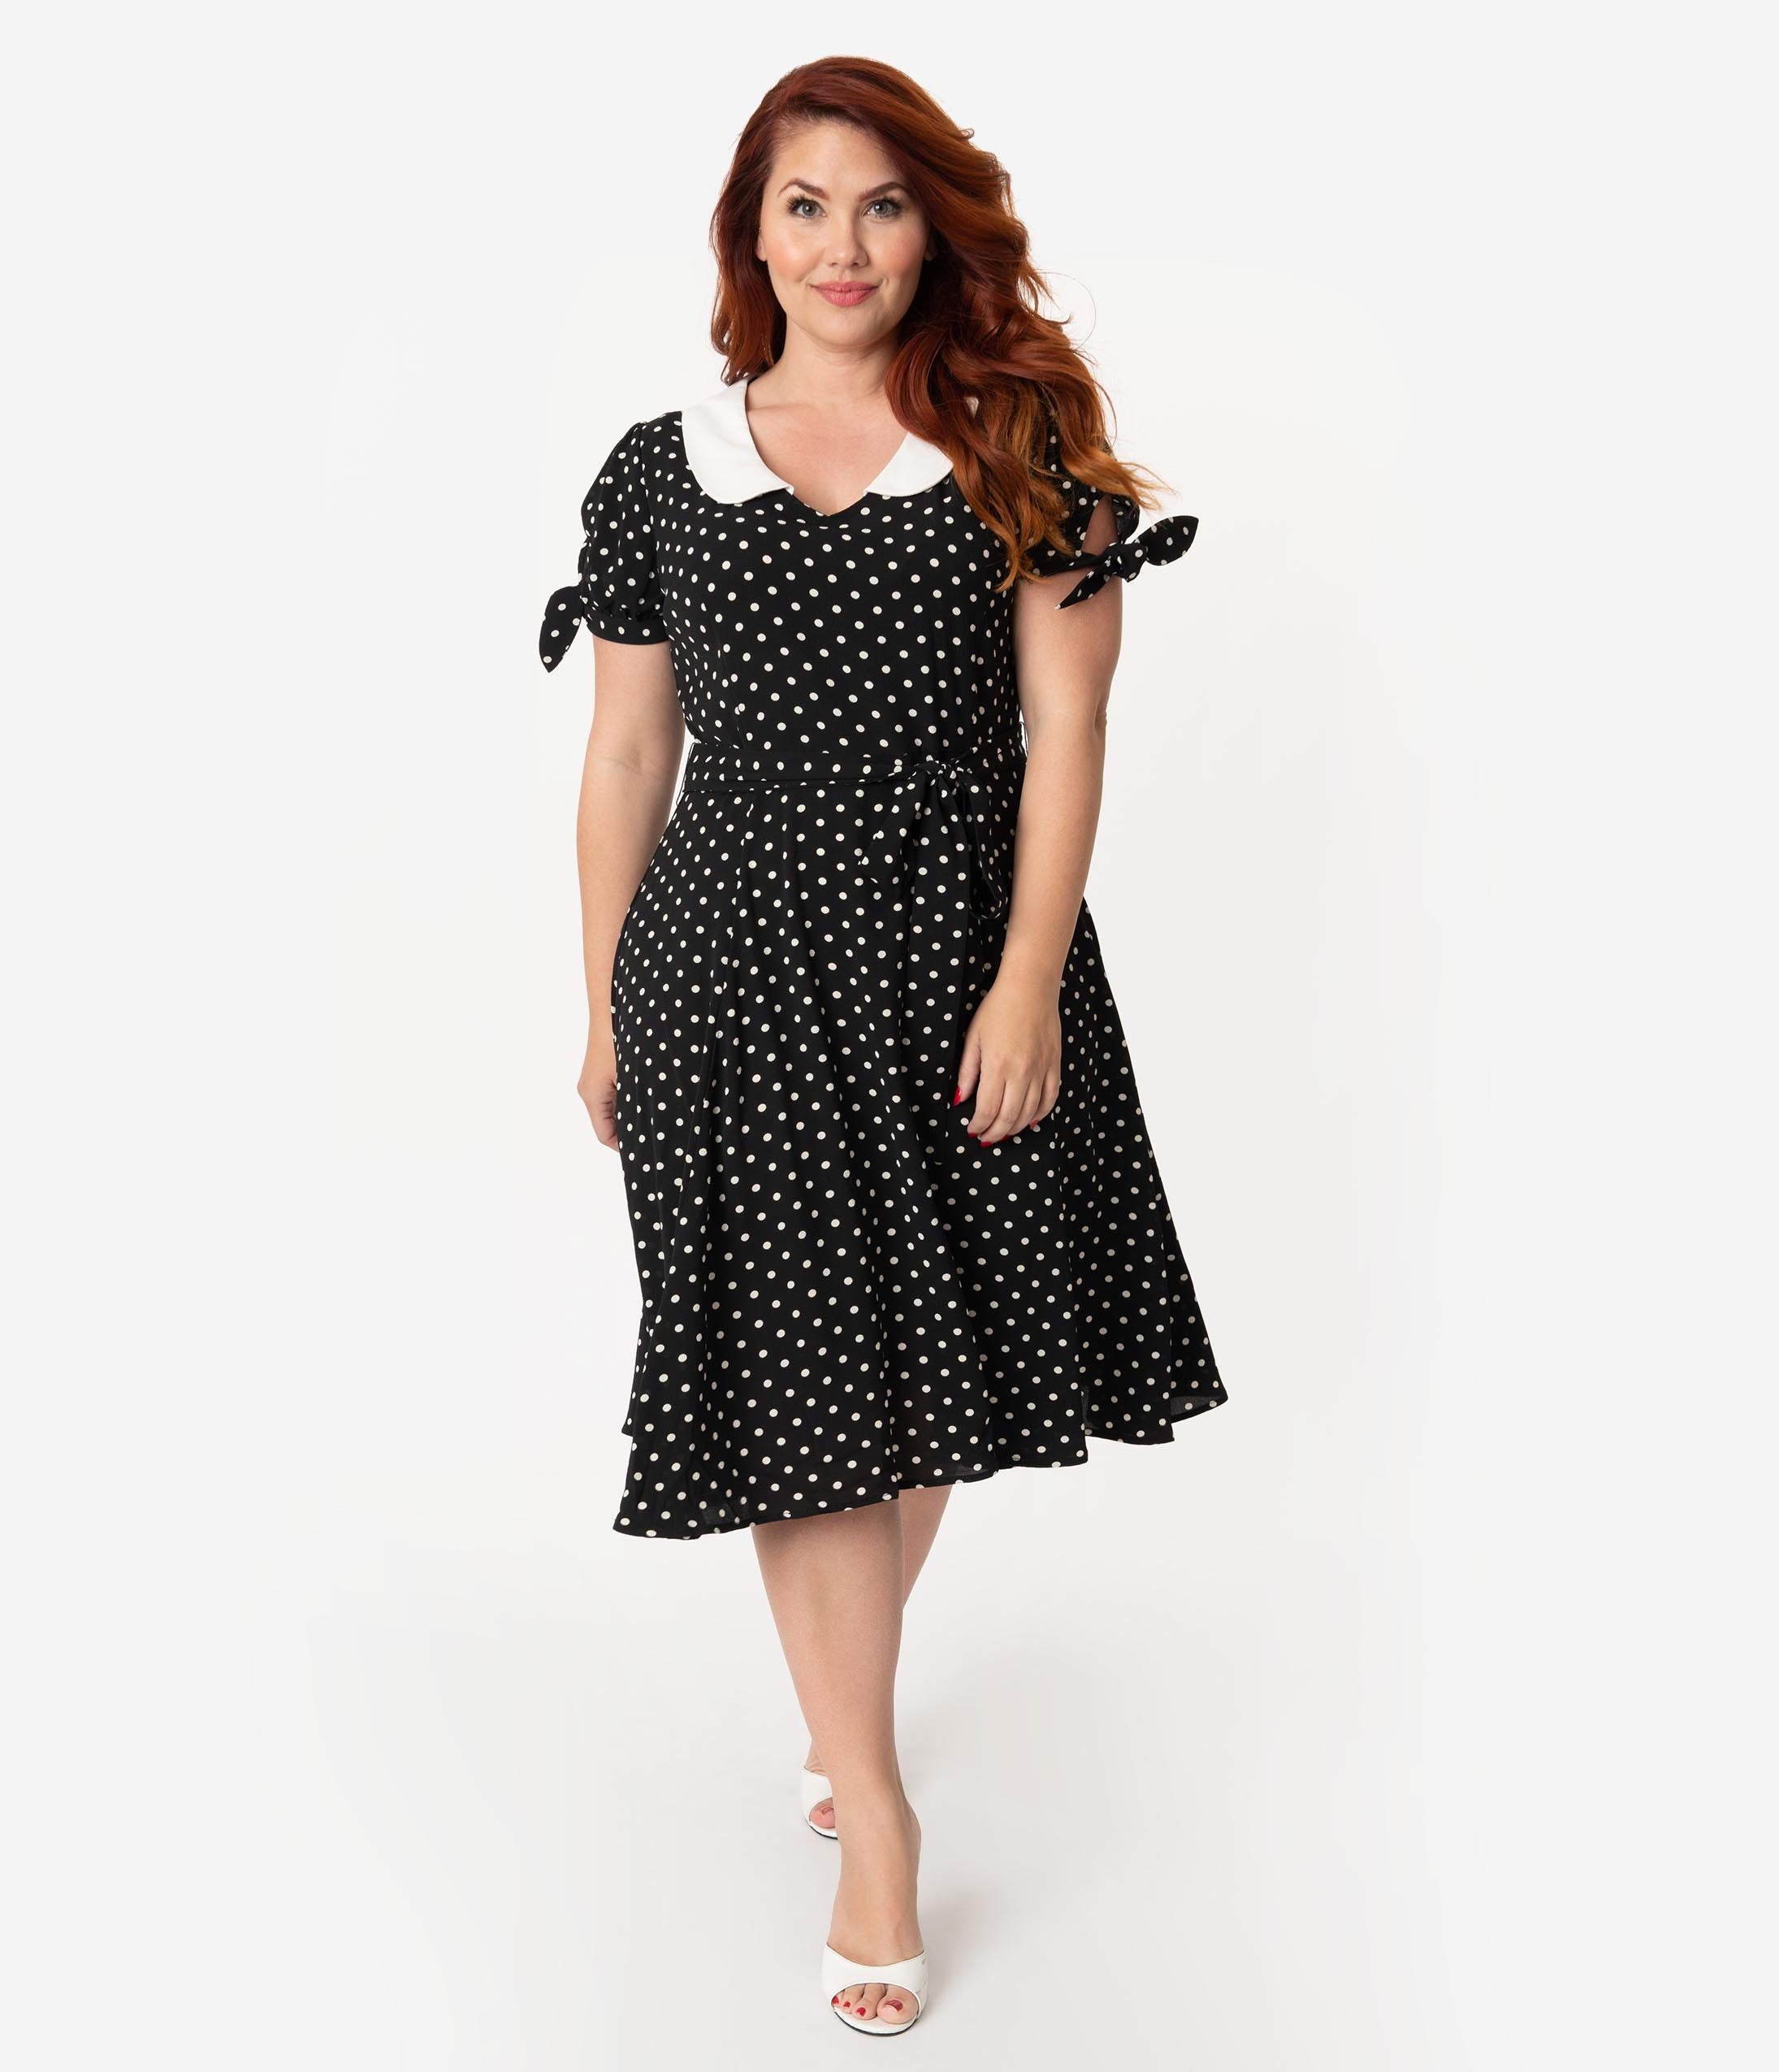 1940s Plus Size Clothing: Dresses History Collectif Plus Size 1940S Style Black  White Polka Dot Mirella Swing Dress $78.00 AT vintagedancer.com